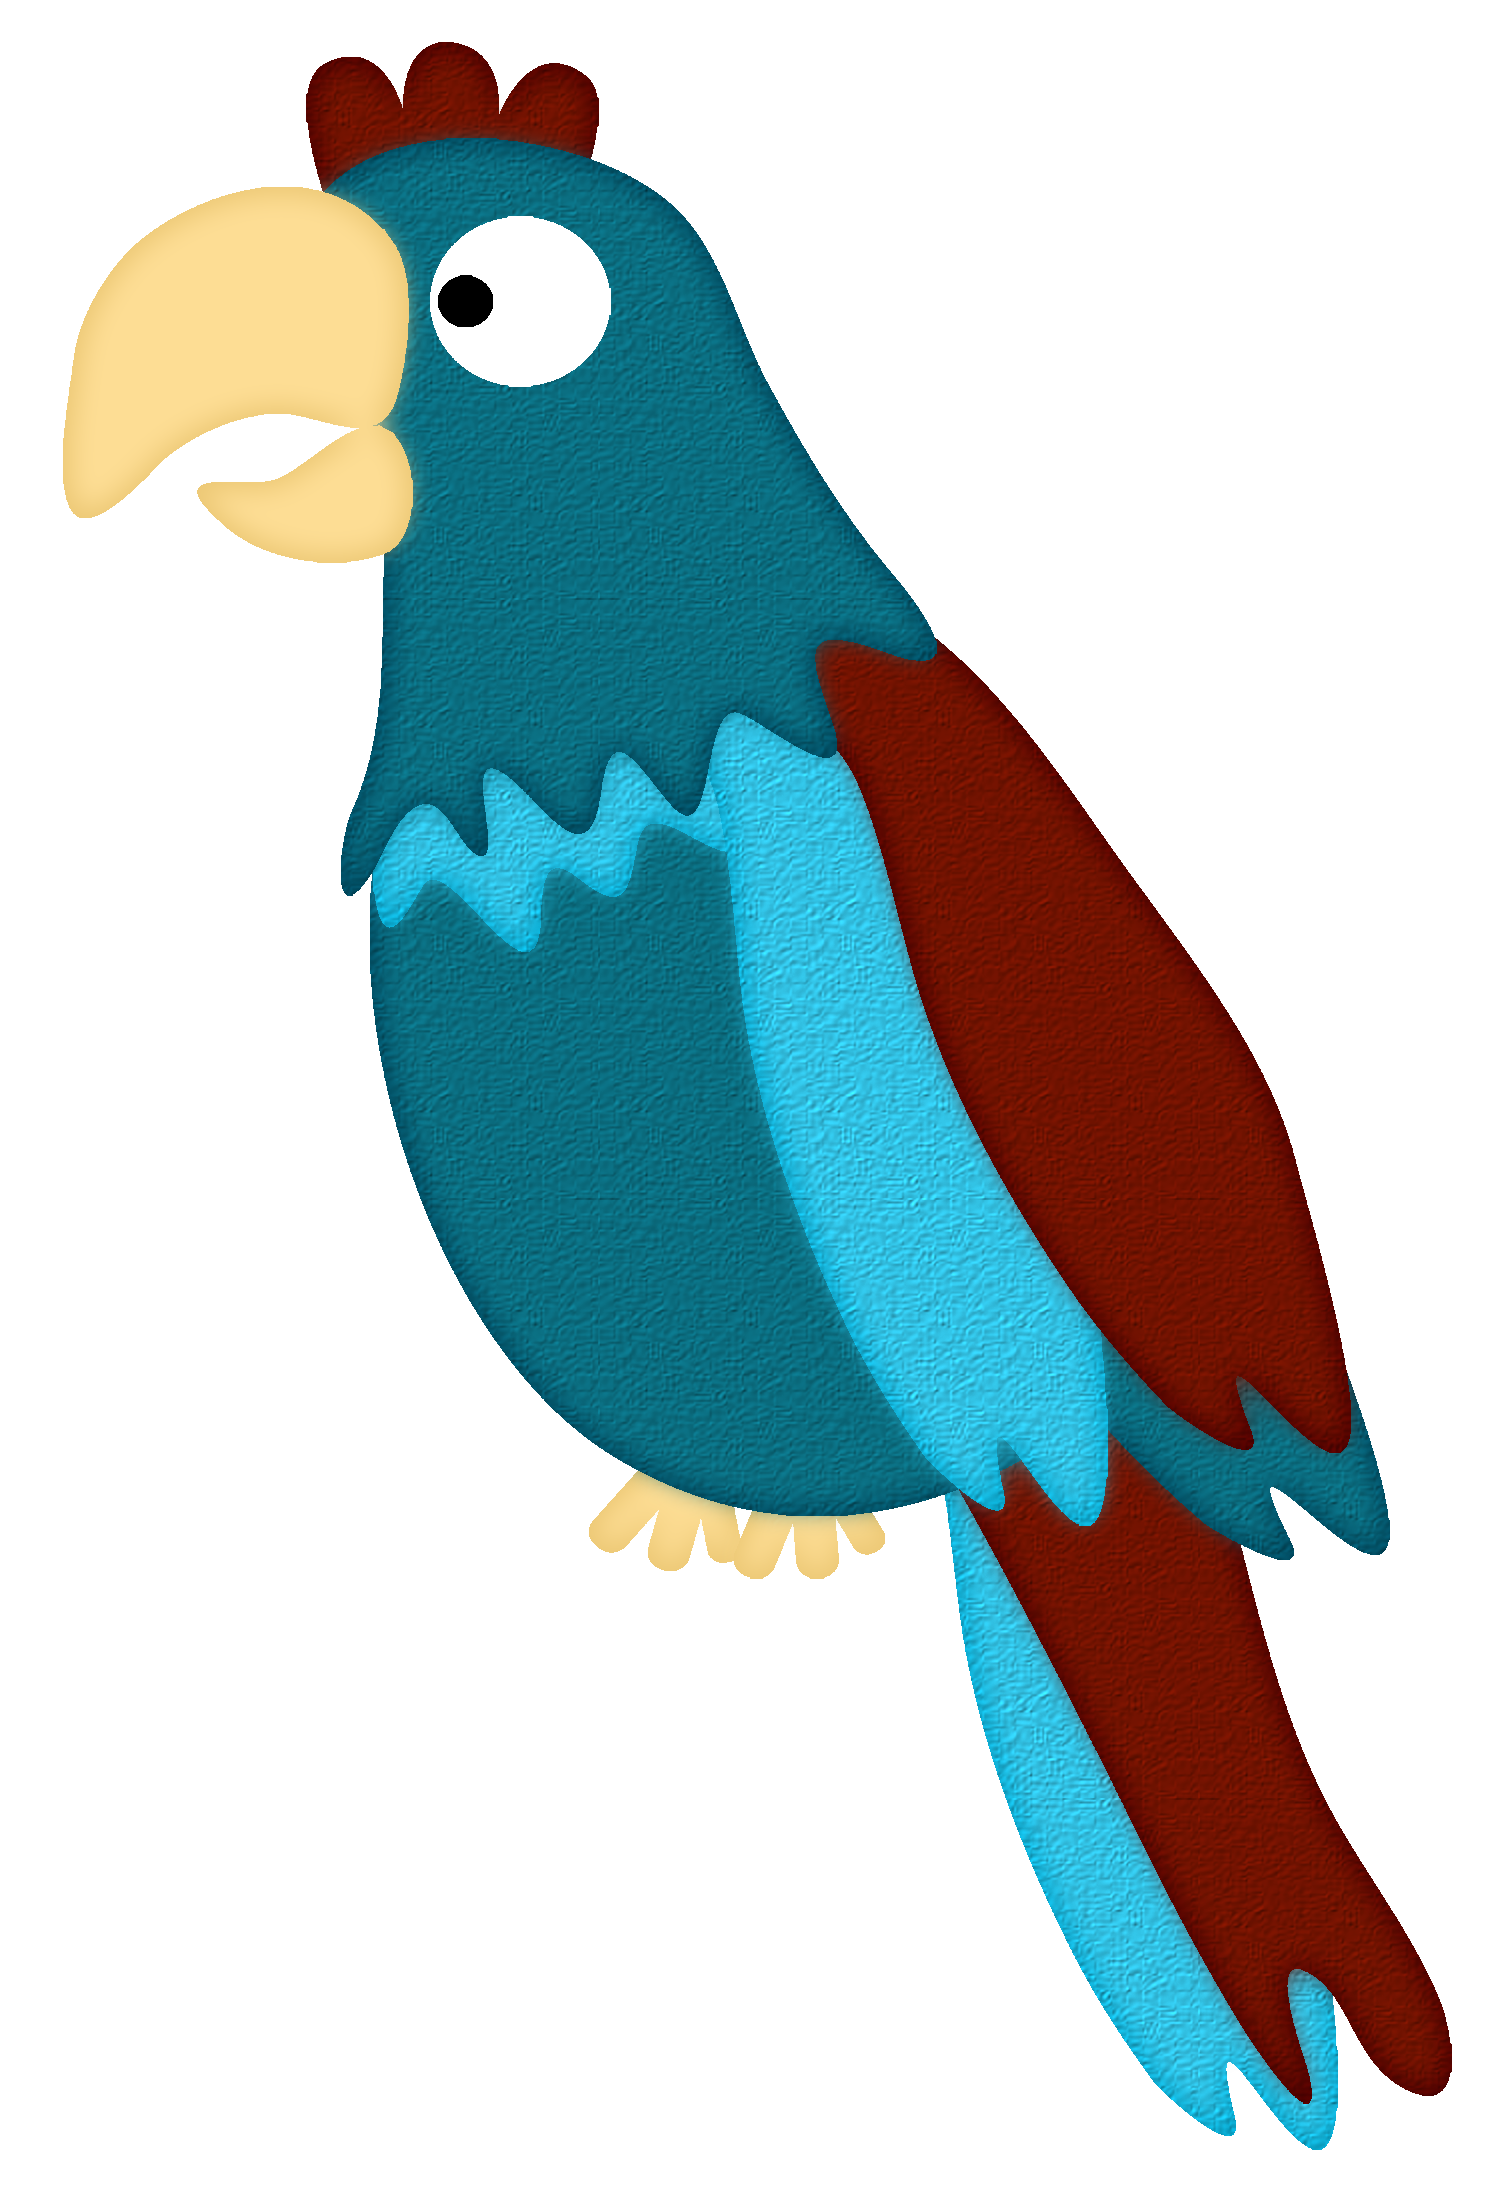 Pirate Parrot A Red Parrot Cartoon Wearing A Pirates Hat And Eye Patch And Poin Sponsored Parrot Cartoon W Parrot Cartoon Pirate Parrot Cute Drawings